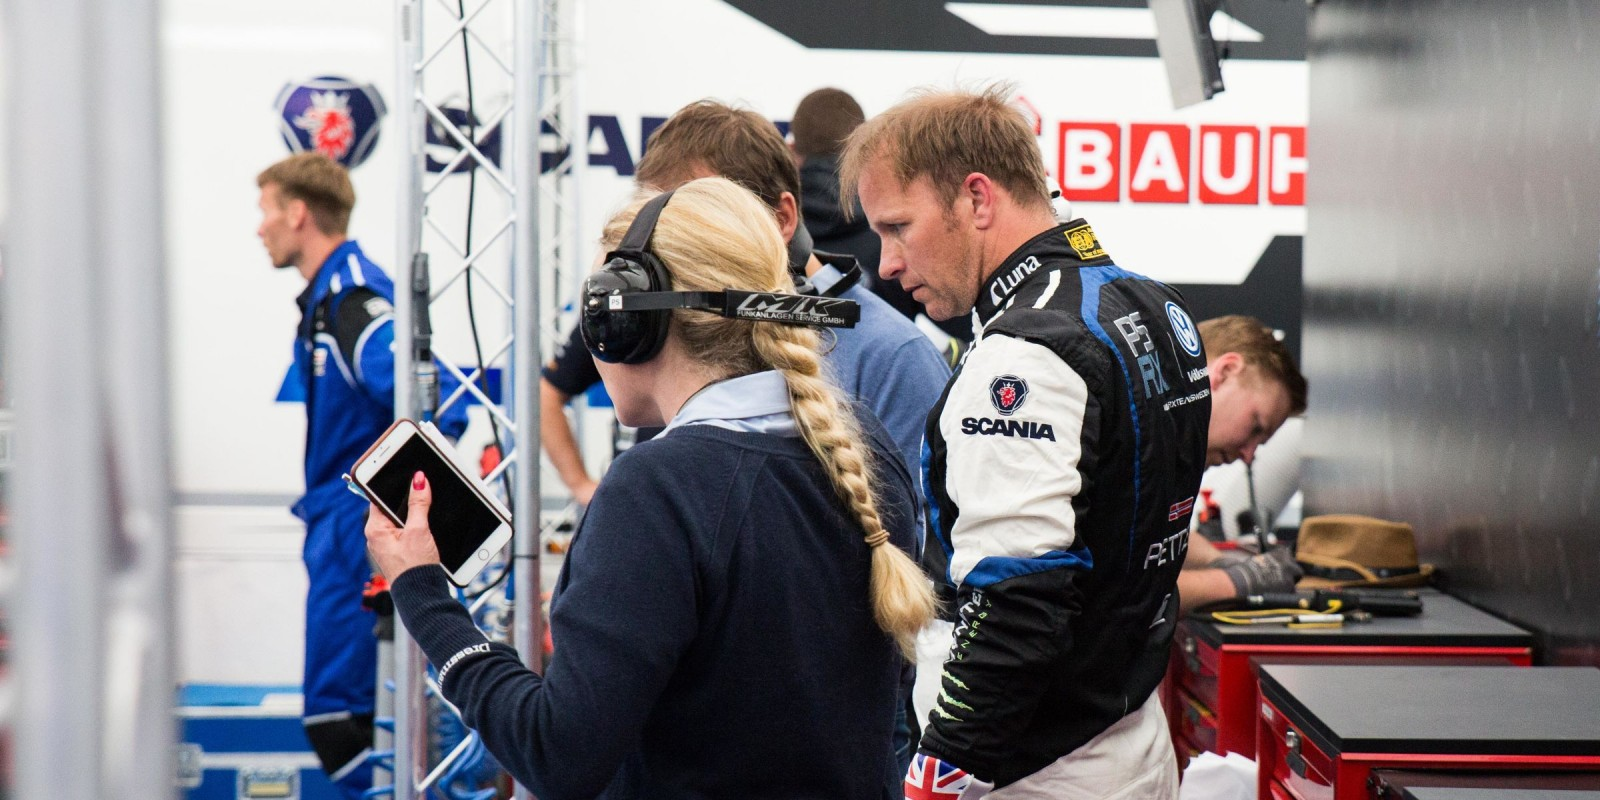 Petter Solberg at Lydden RX